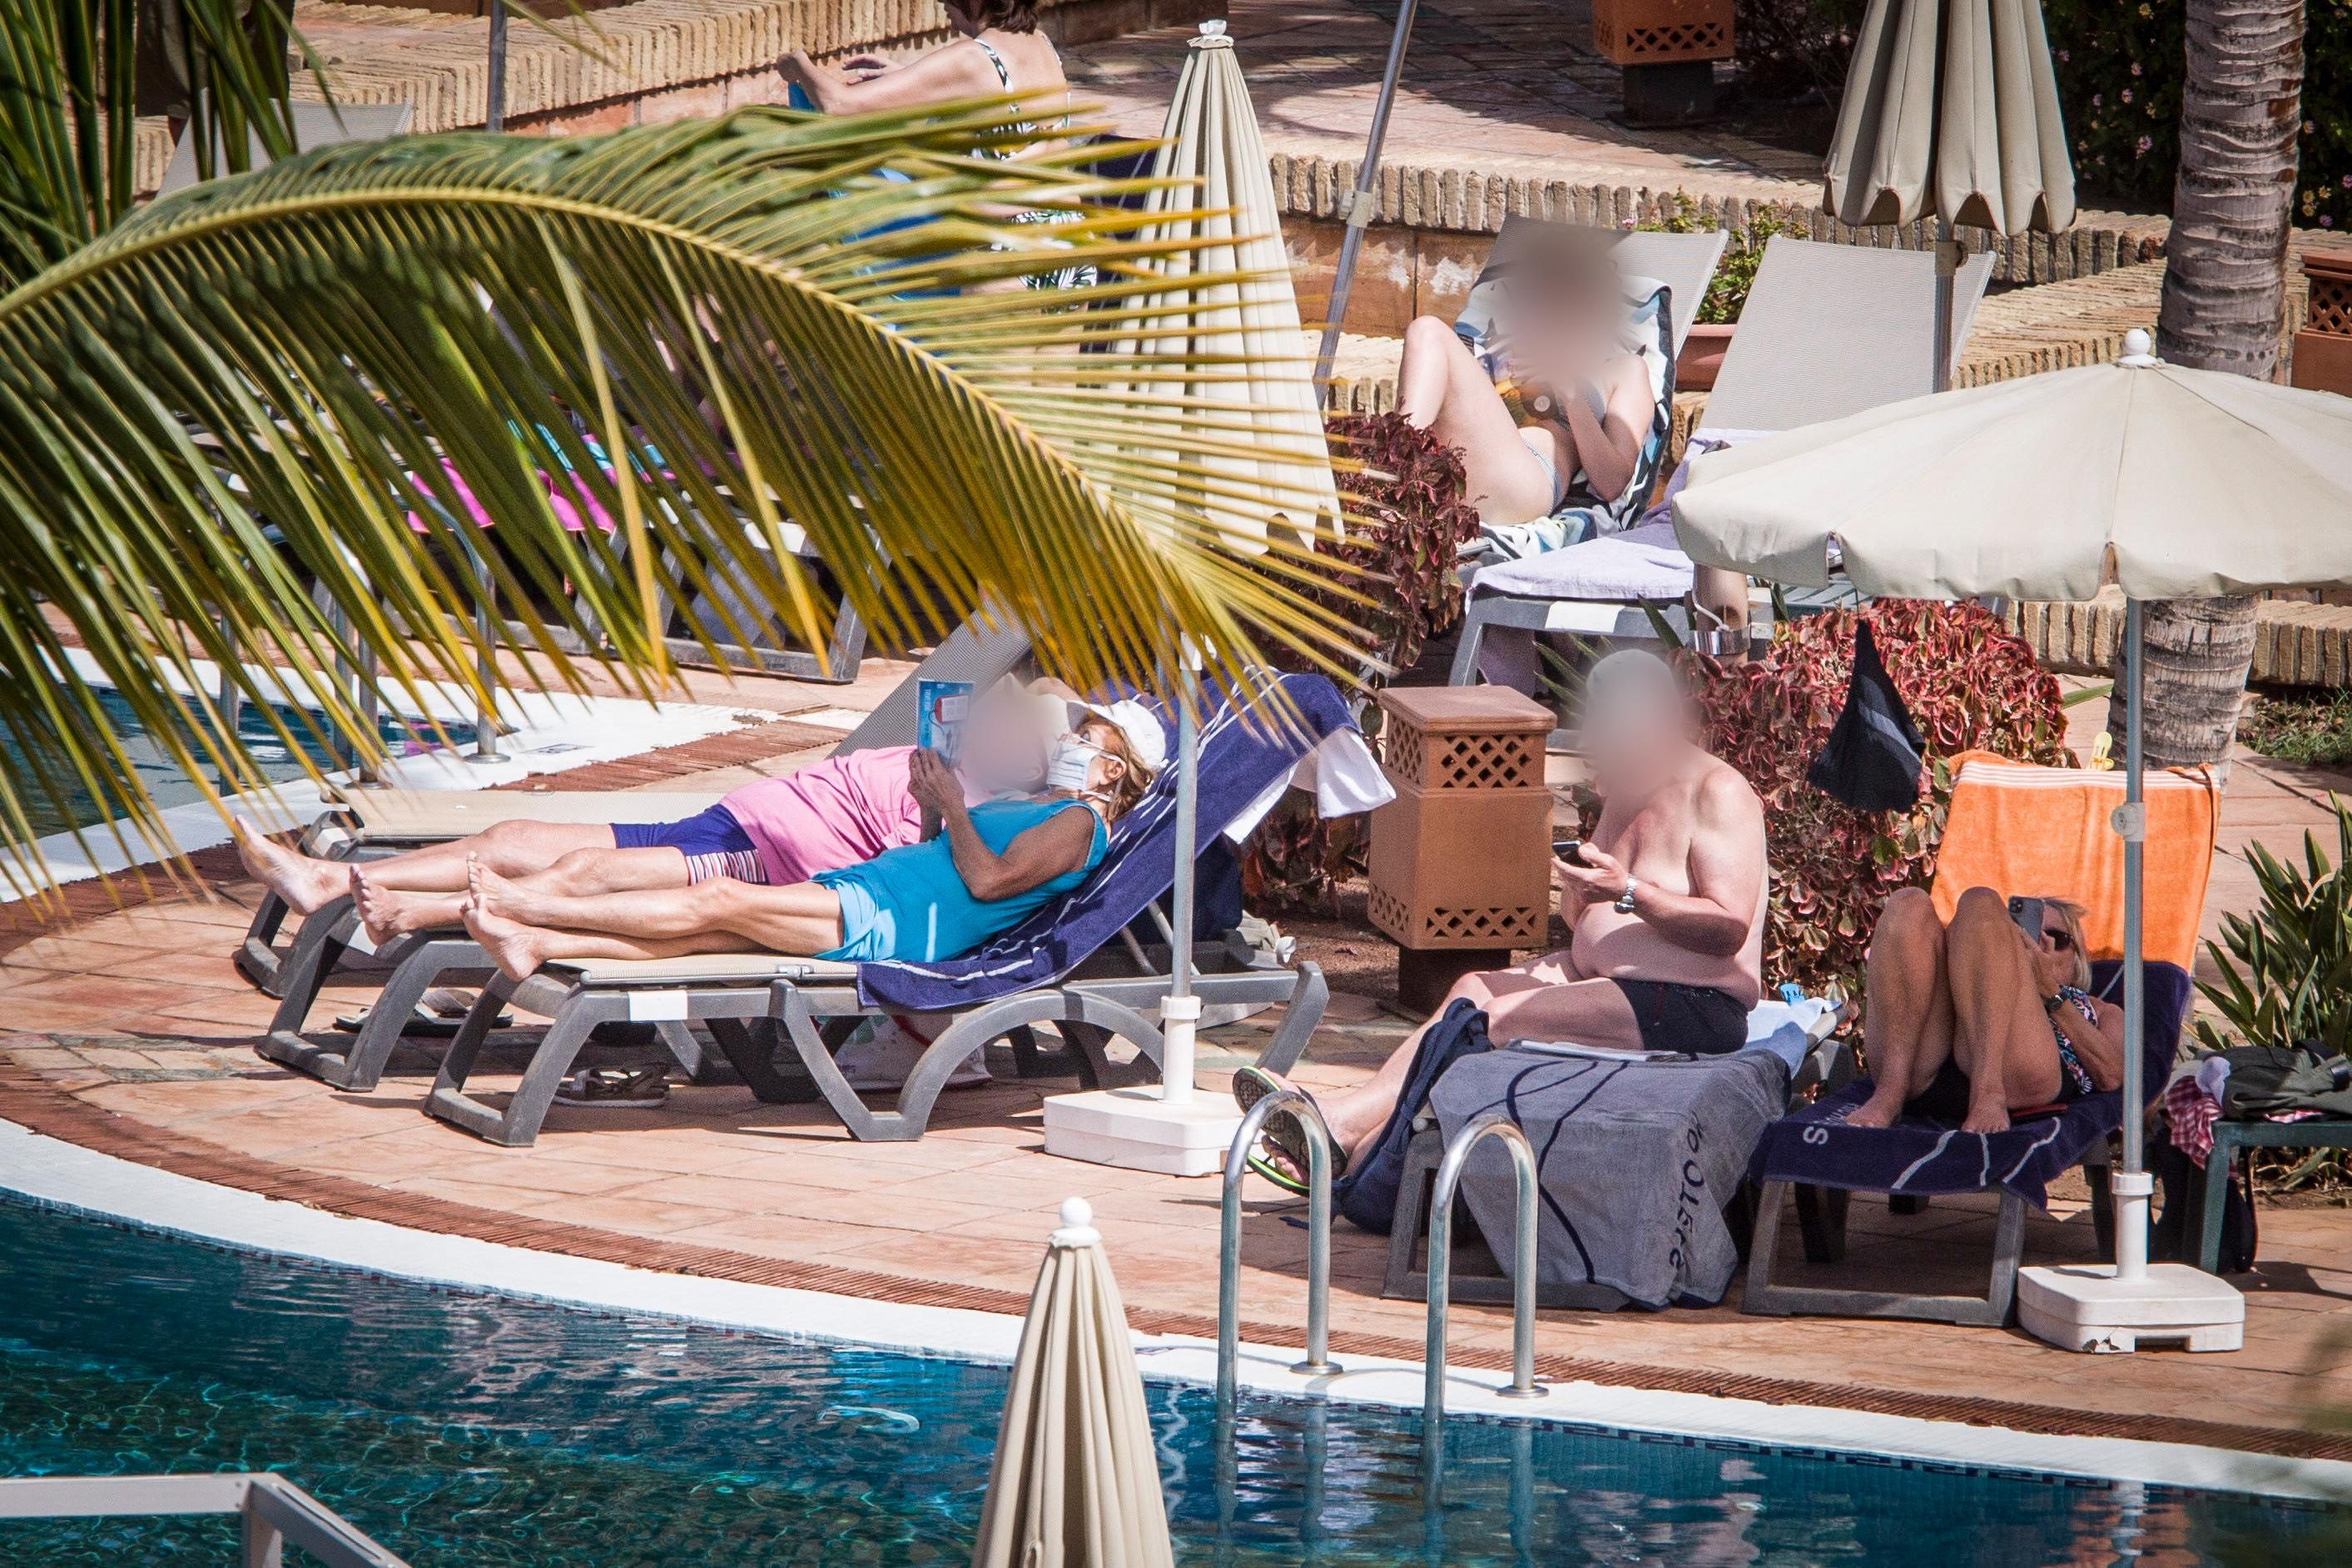 26 February 2020, Spain, Teneriffa: Hotel guests sunbathe by the pool. The hotel in Tenerife, which has been quarantined because of coronavirus cases, continues to be cordoned off by the police. Photo: Arturo Rodríguez/dpa - only for use in accordance with contractual agreement (Photo by Arturo Rodríguez/picture alliance via Getty Images)